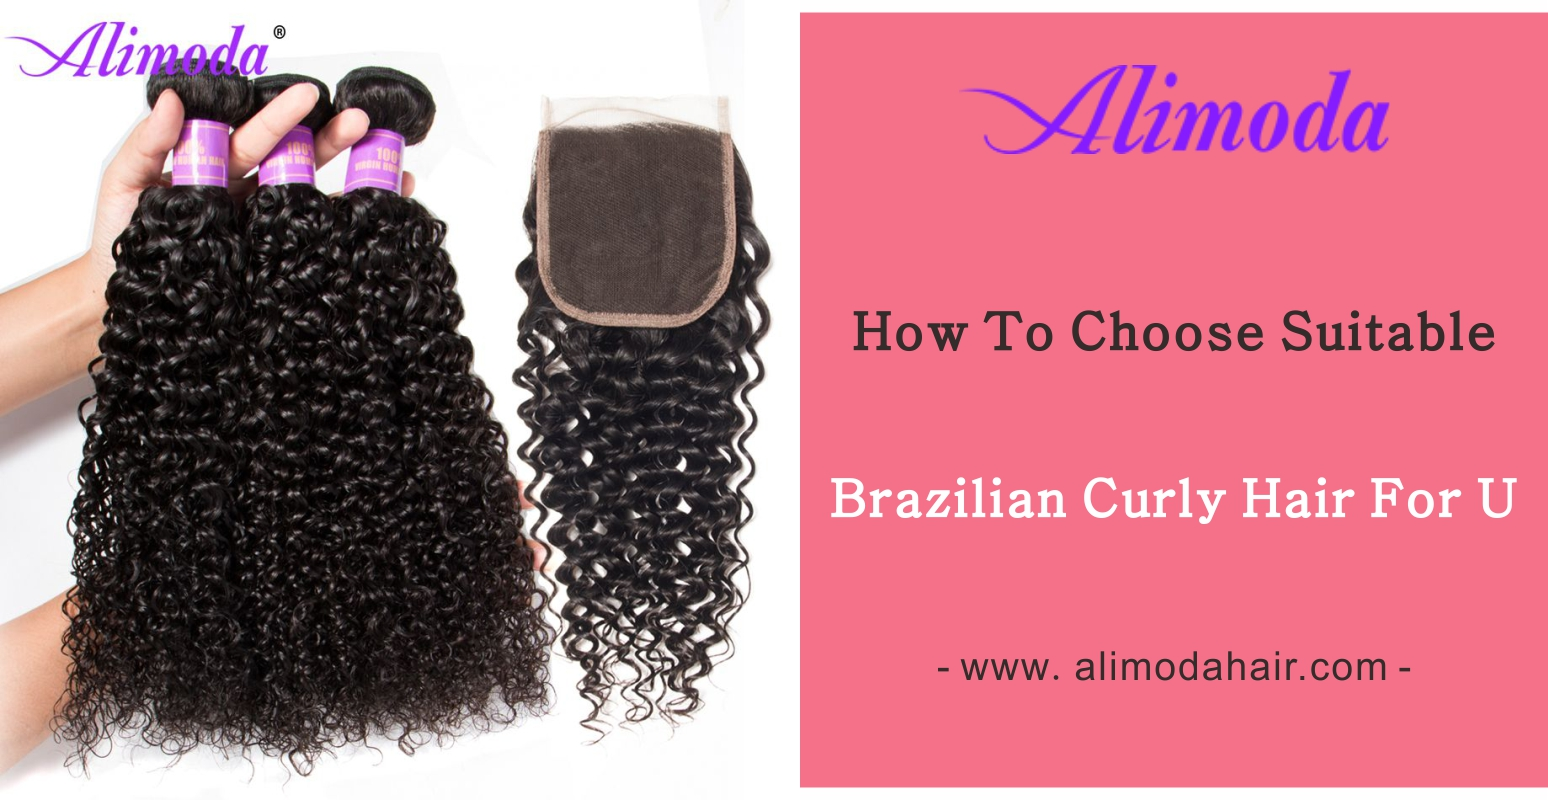 How to choose suitable Brazilian curly hair for you?